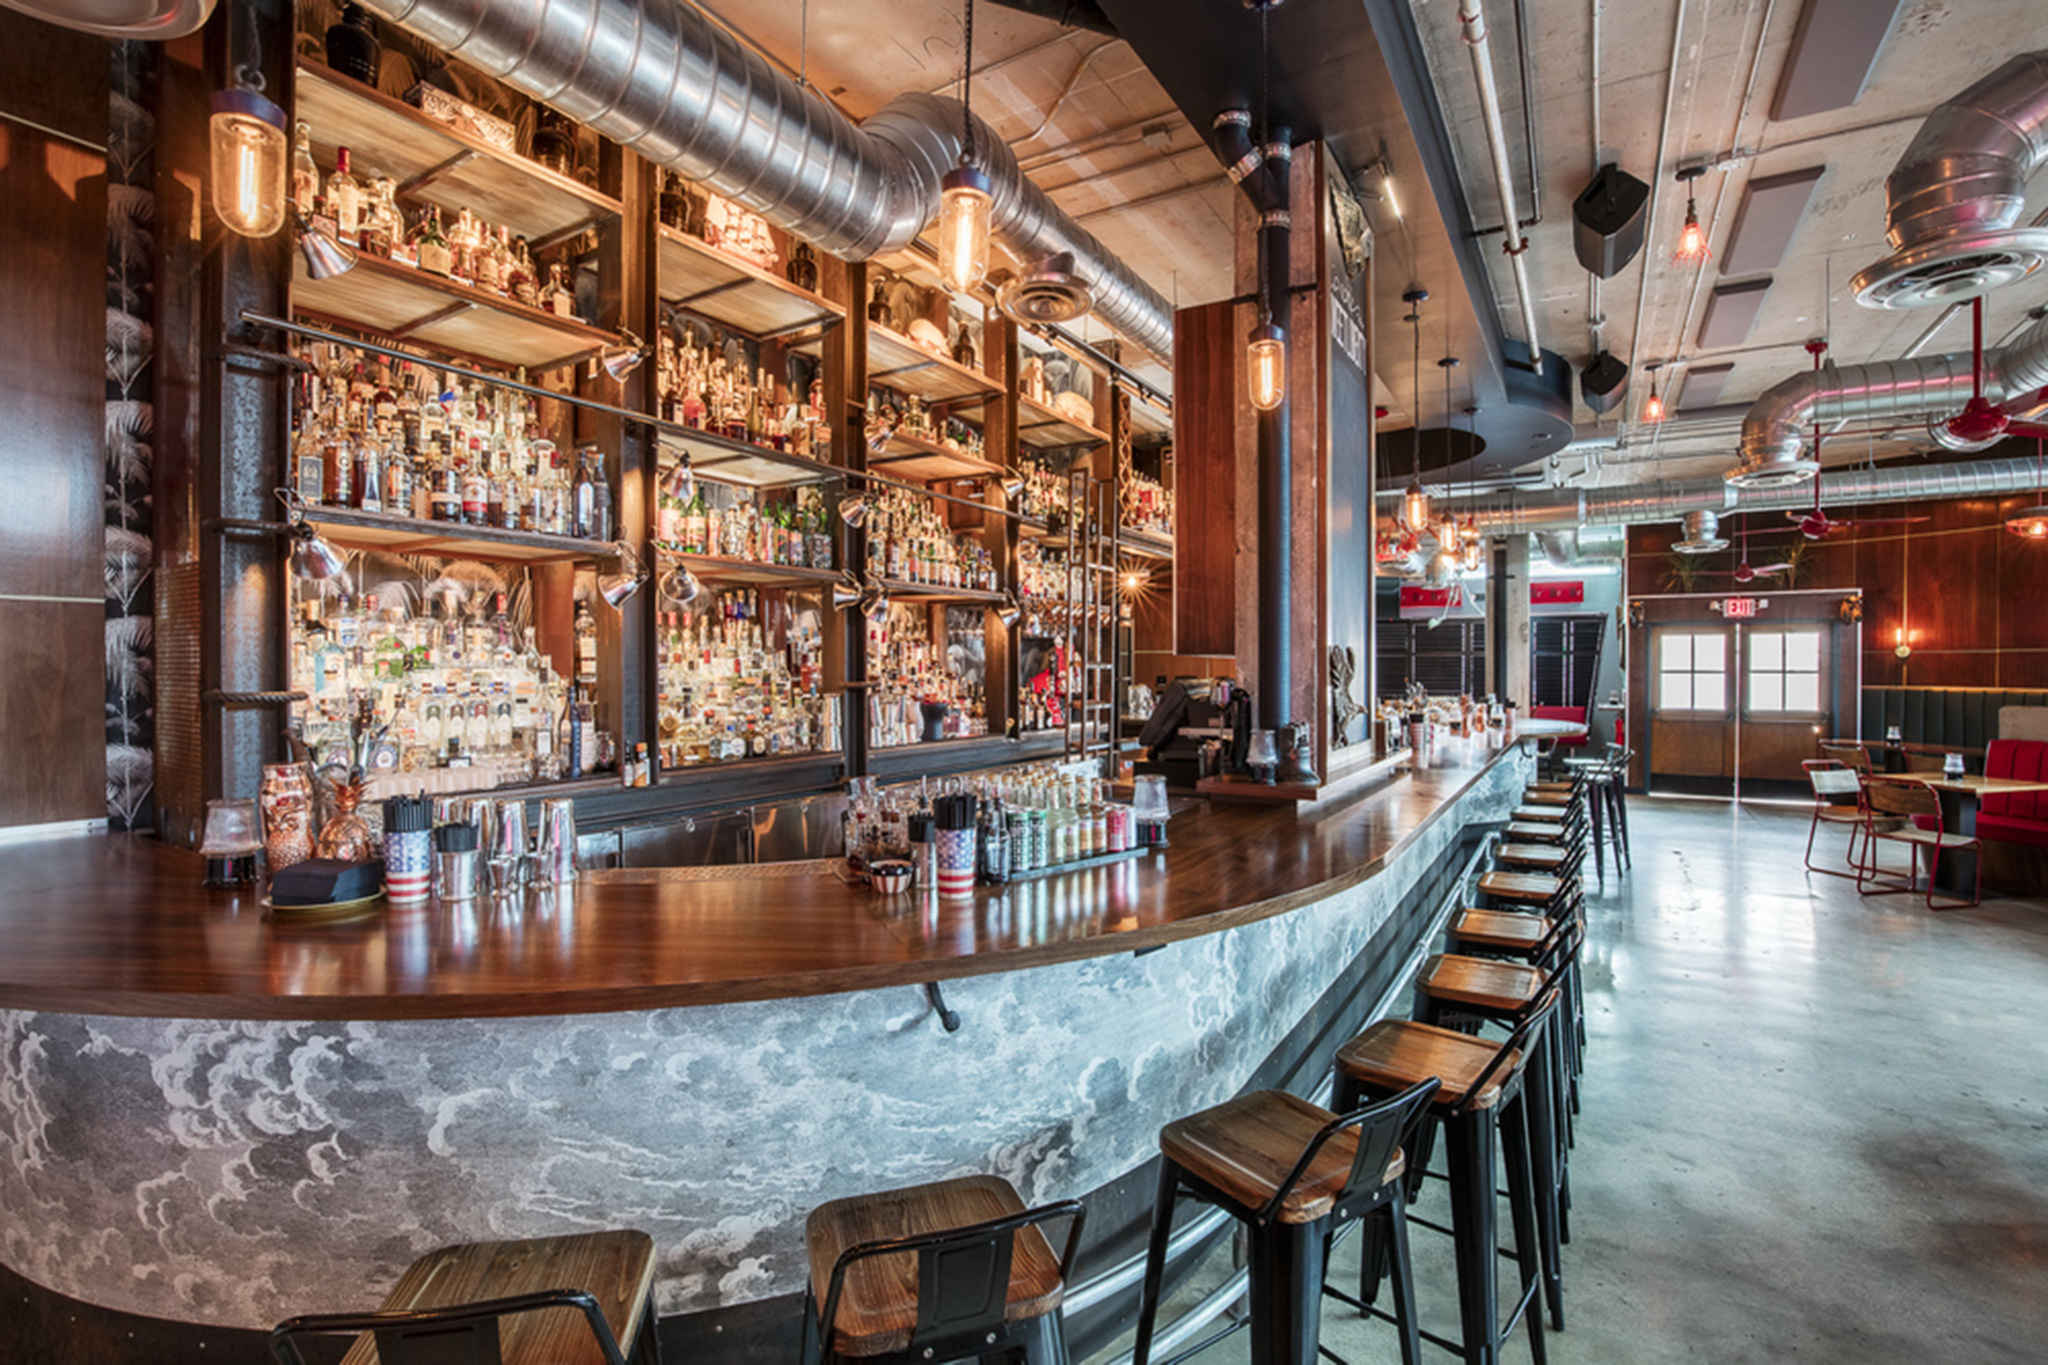 The 20 best bars in Miami